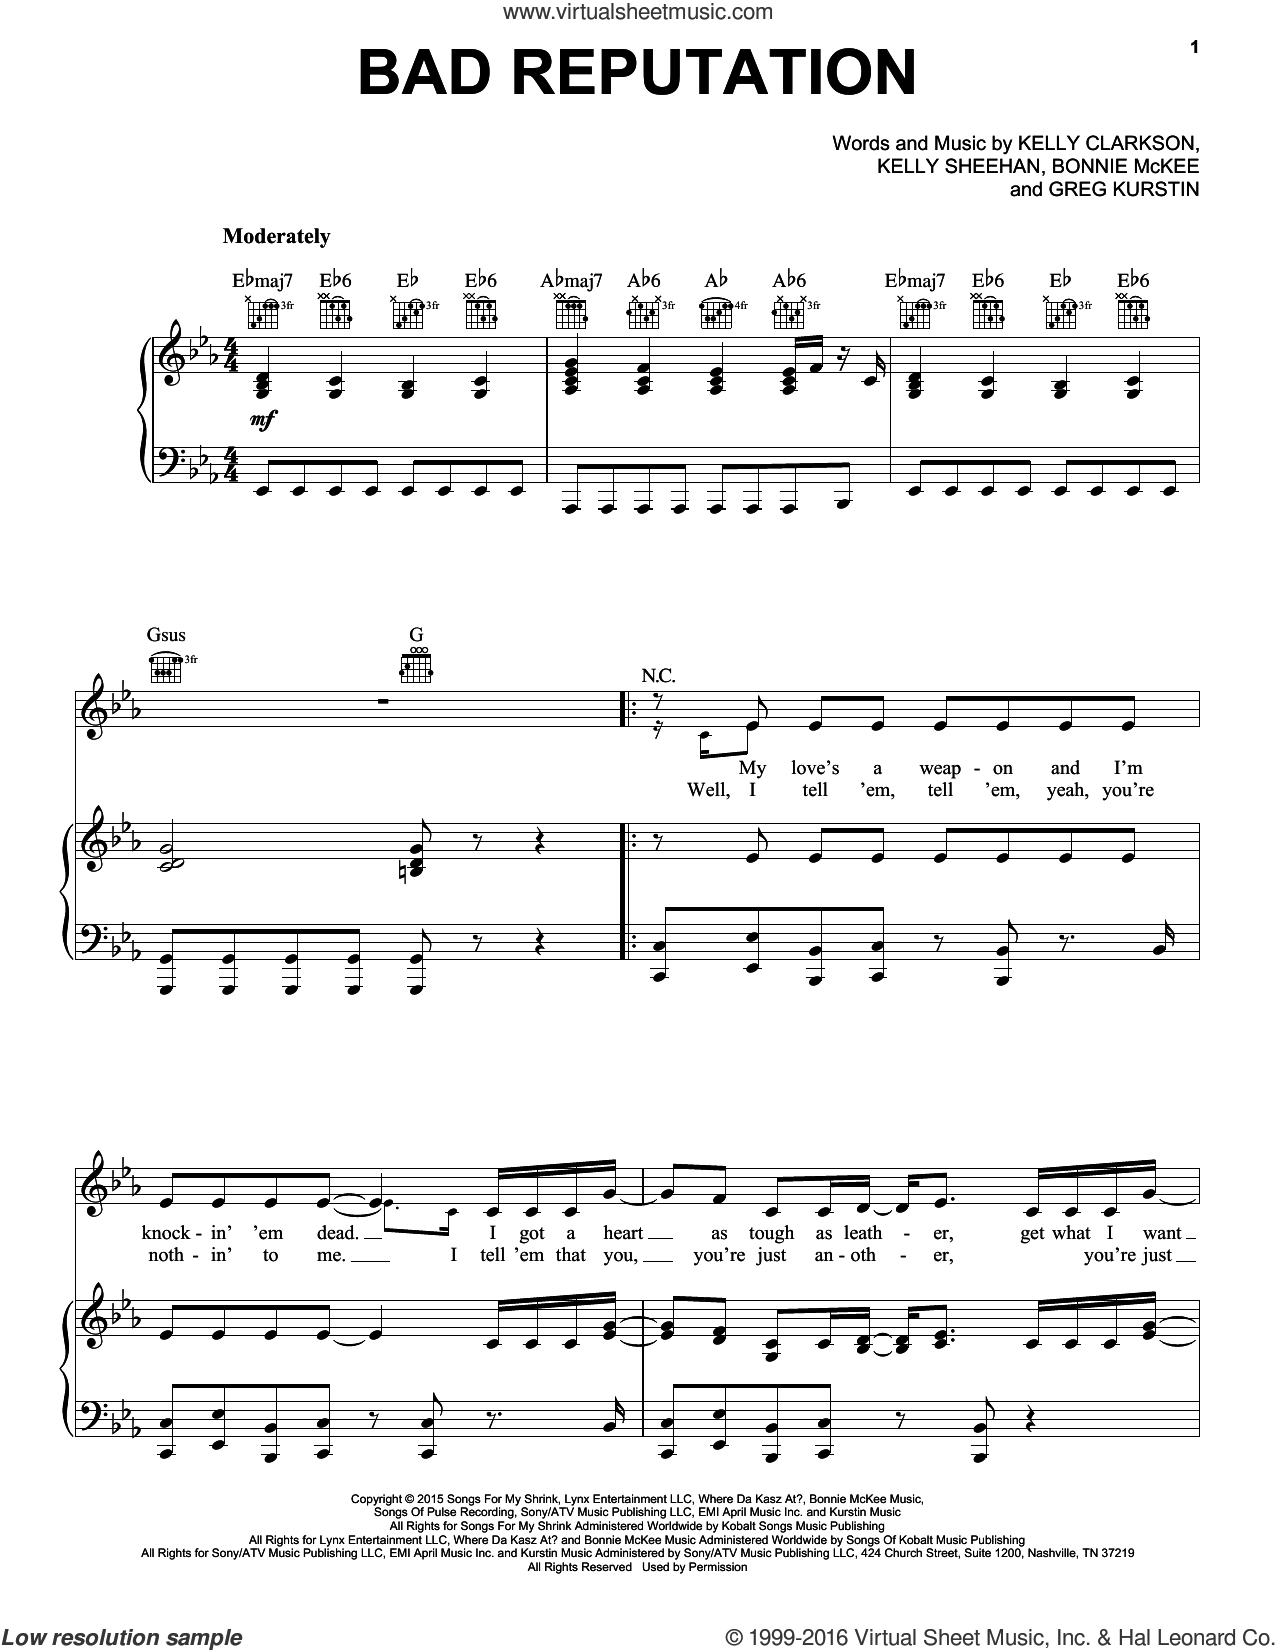 Bad Reputation sheet music for voice, piano or guitar by Kelly Sheehan